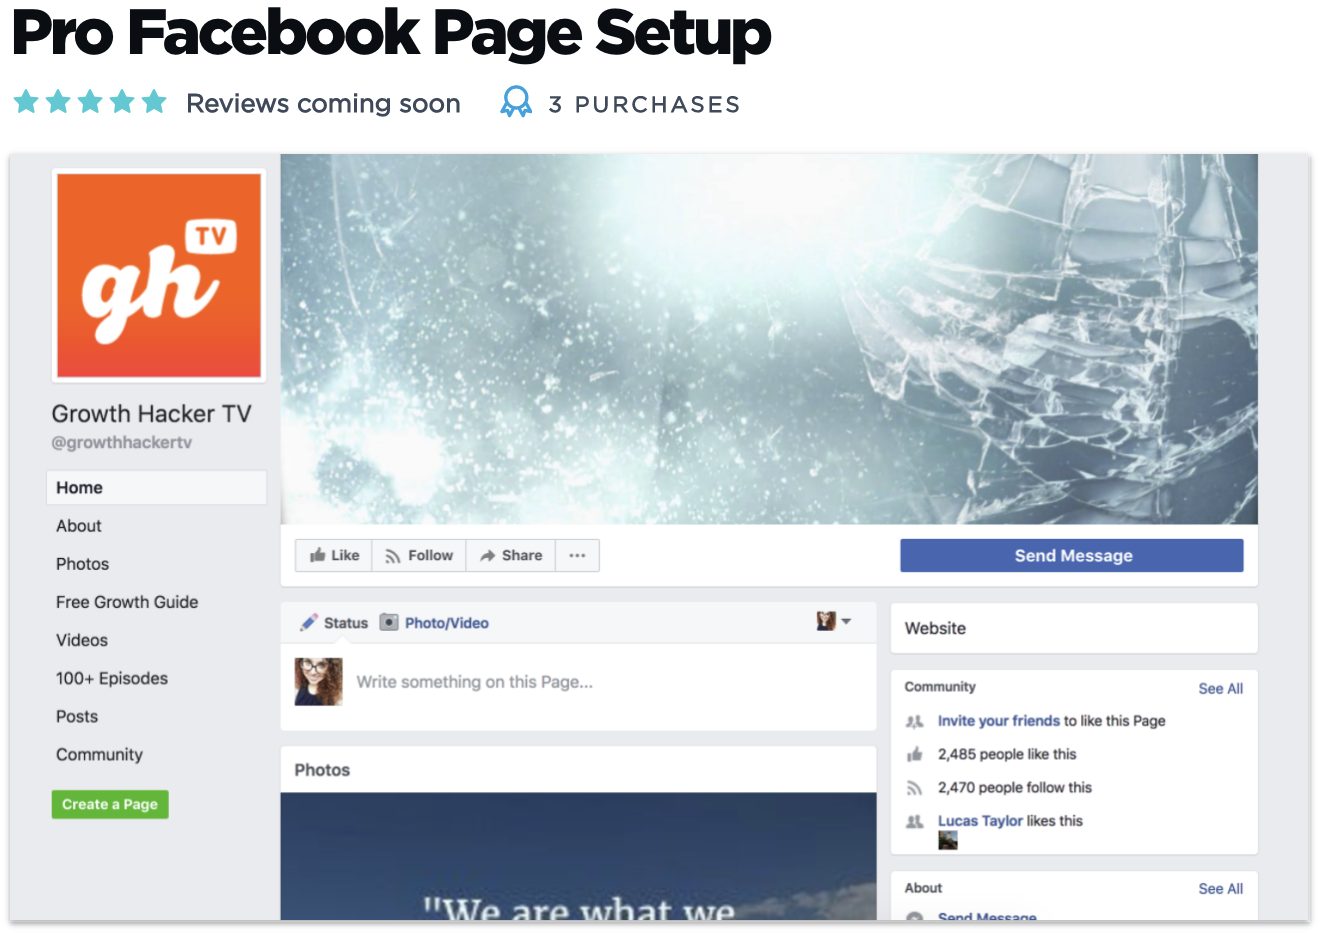 8b87627d1857f79e8a8b3c37f0f74332 - How To Get People To Your Facebook Business Page